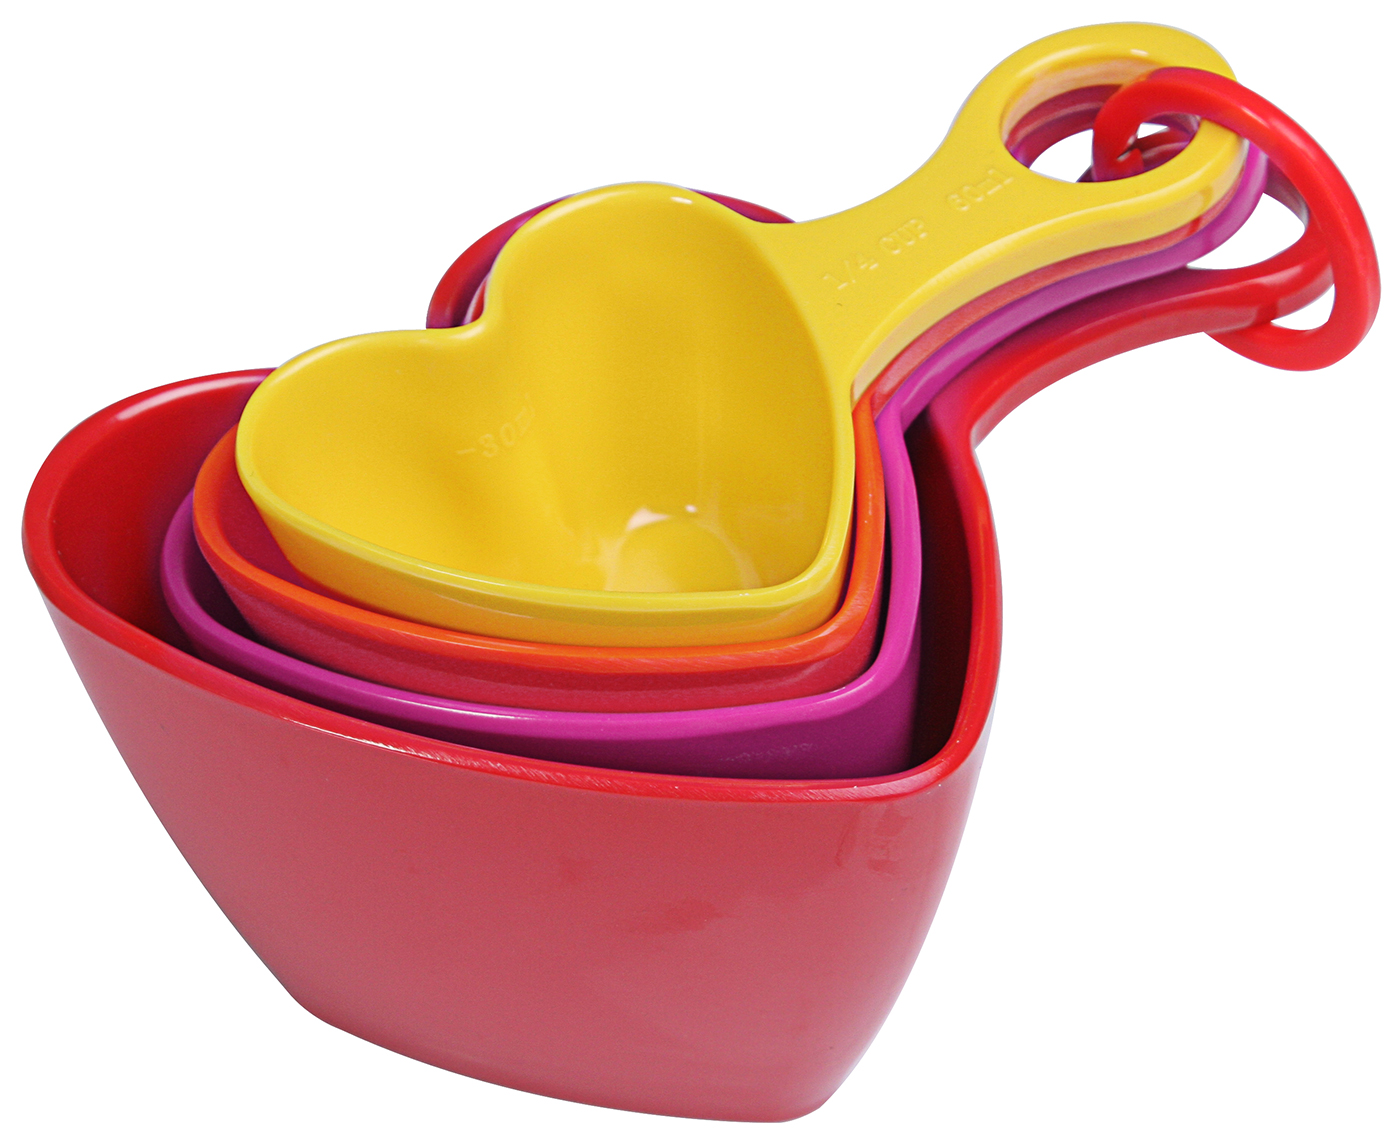 Measuring Cups And Spoons Clipart Measuring Spoons